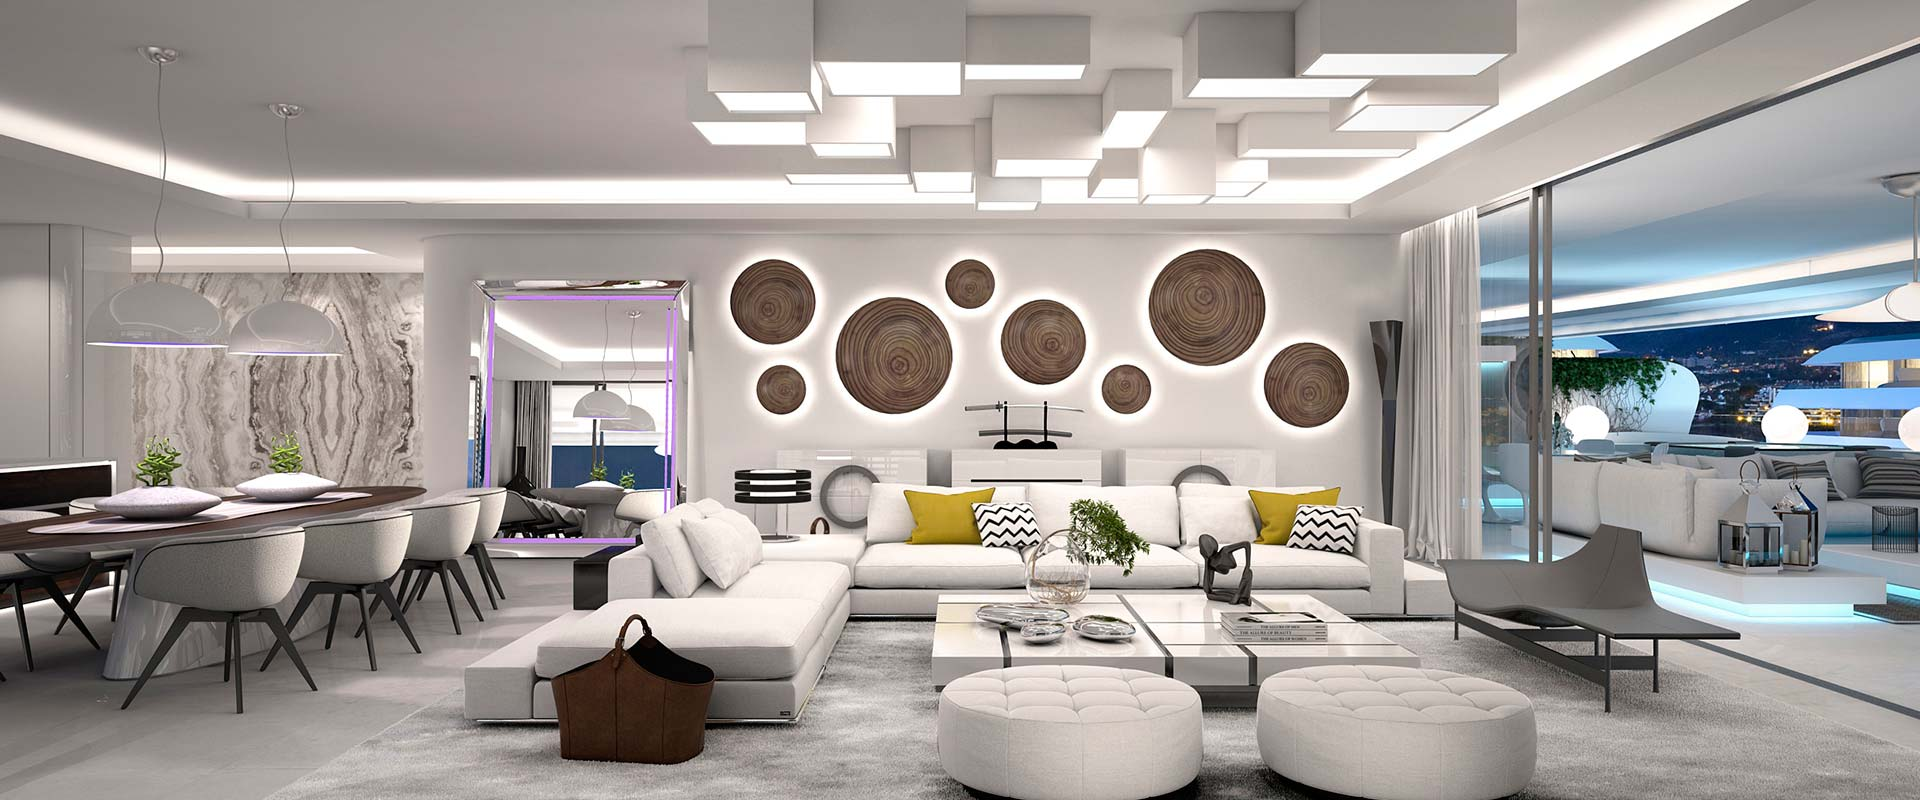 New apartments for sale in marbella on the golden mile for Interieur bedrijf